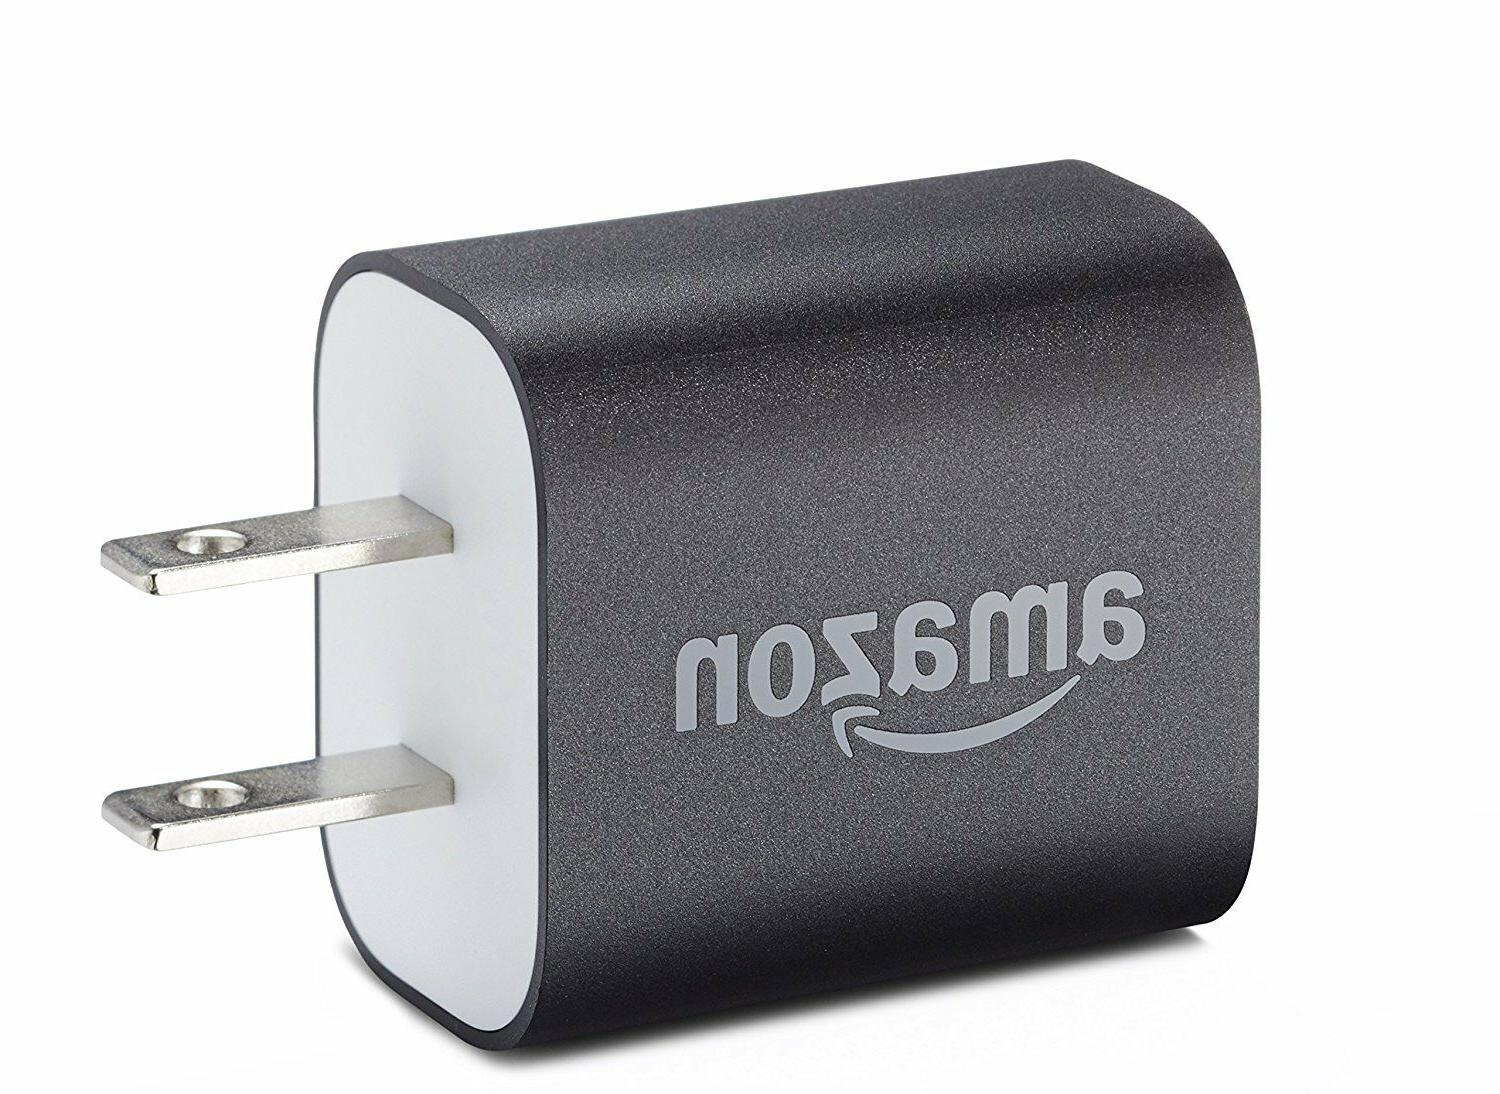 Amazon 5W USB Official Charger and Power Adapter for Firesti